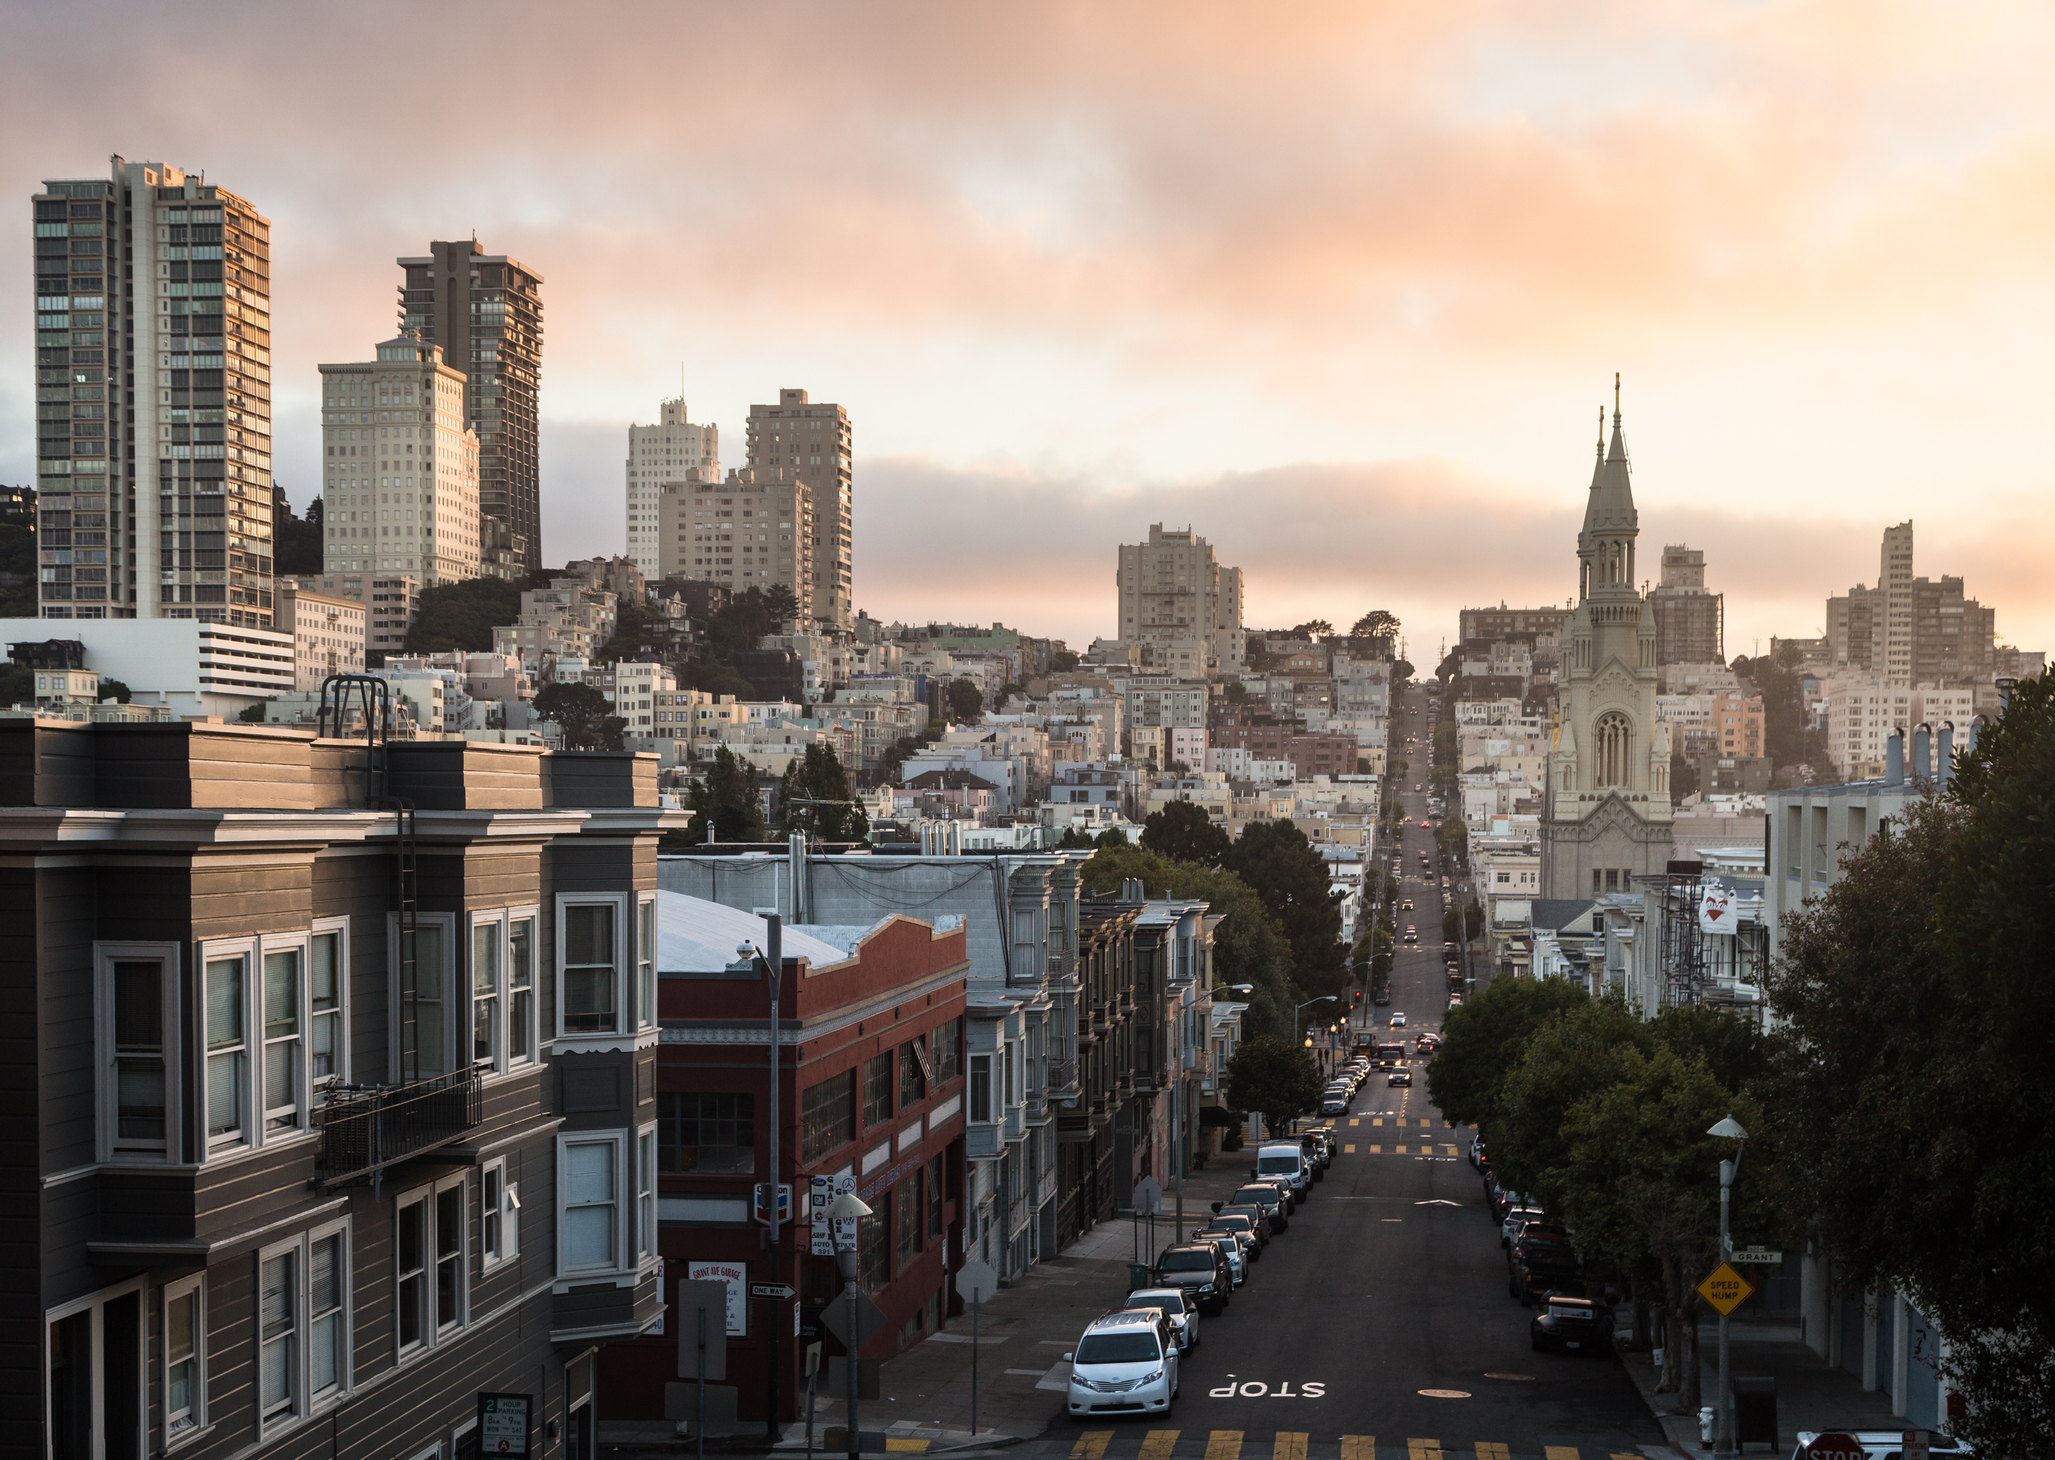 Sunset over Russian Hill, from Telegraph Hill in North Beach, in San Francisco, California, USA.